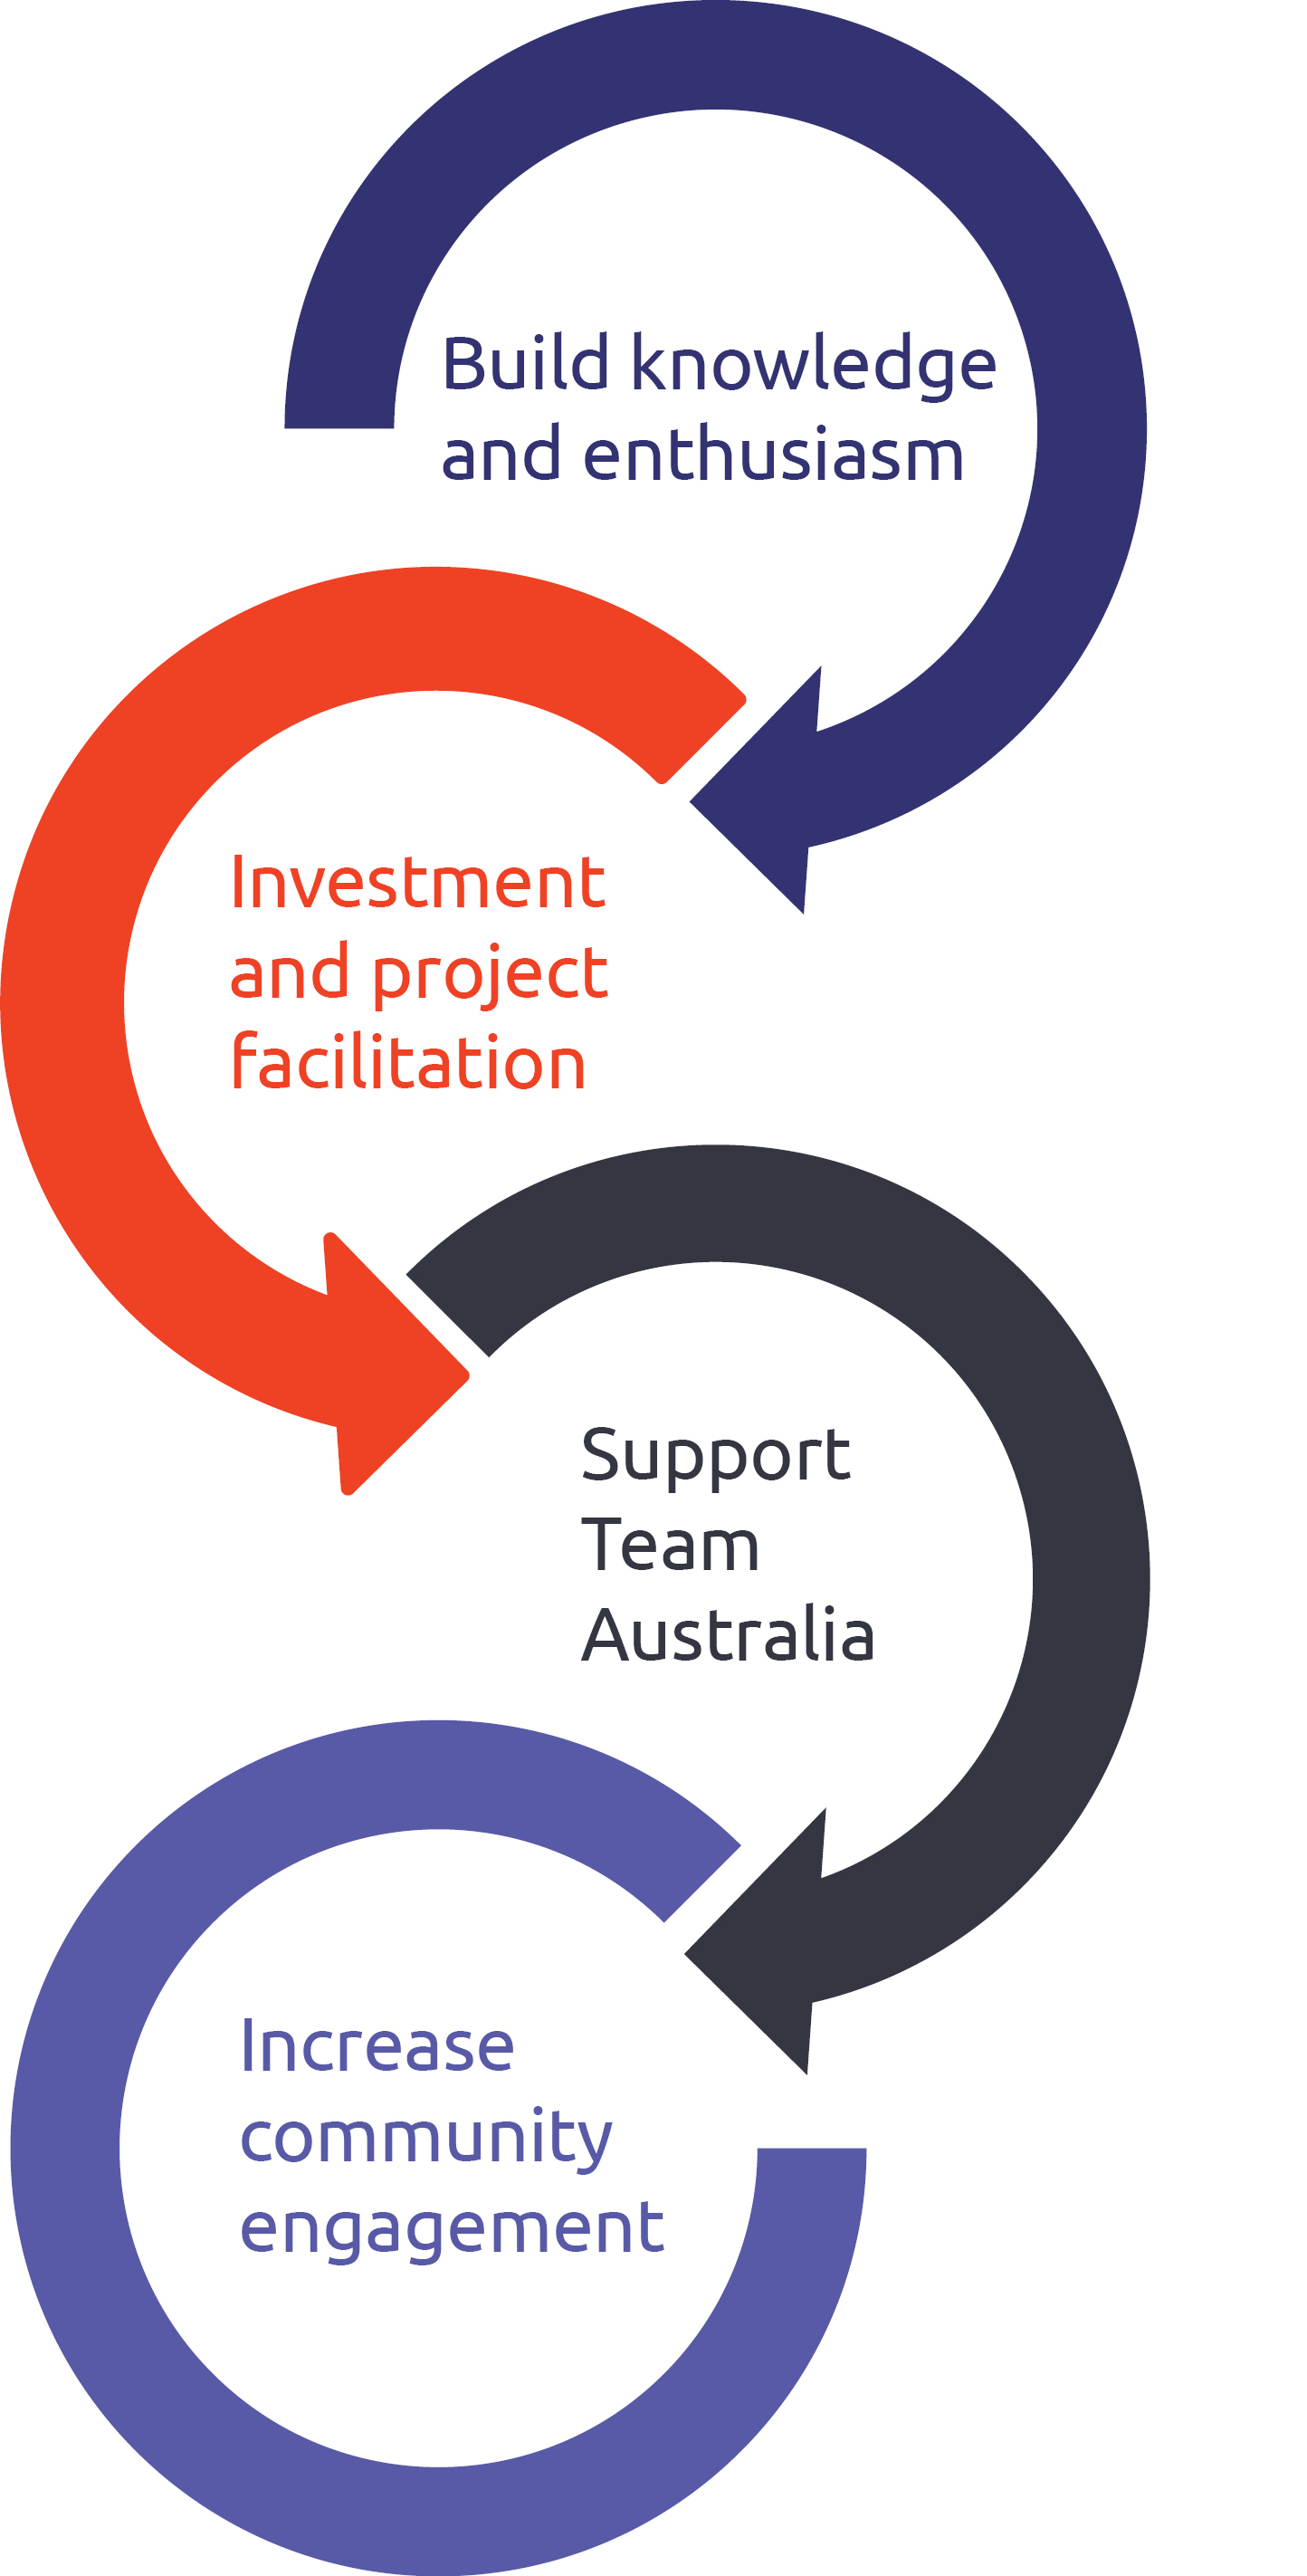 Build knowledge and enthusiasm, investment and project facilitation, support Team Australia, increase community engagement